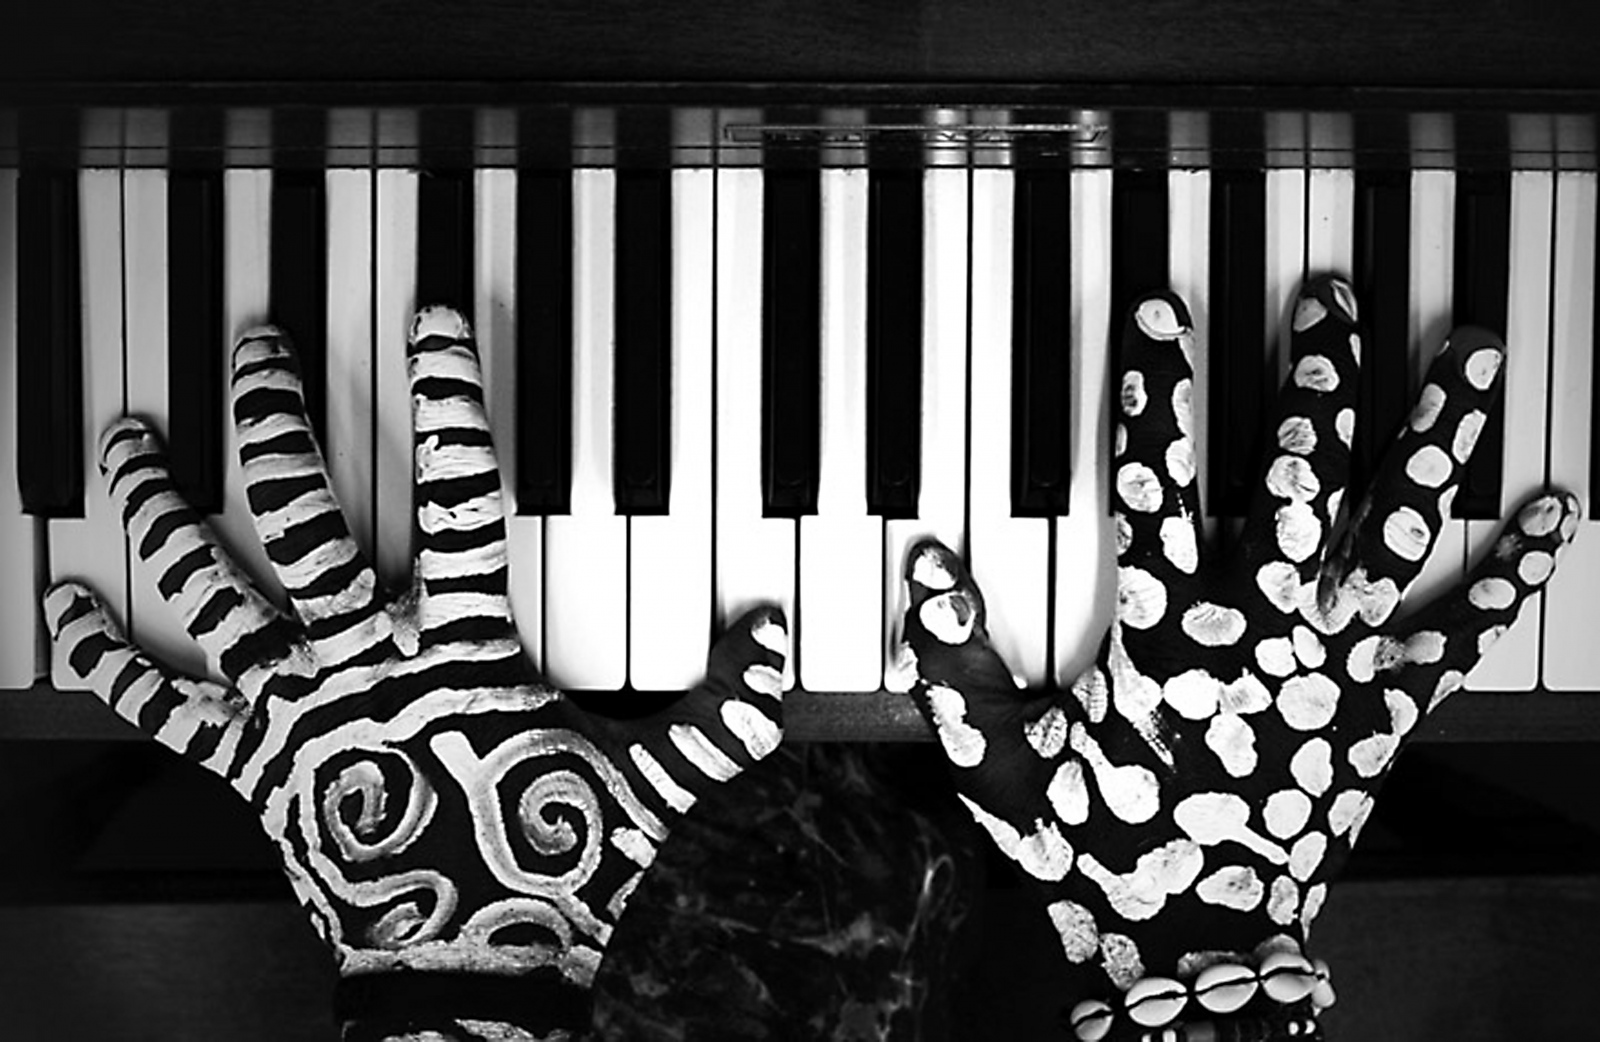 Hand on the Piano, Austin, Texas - USA